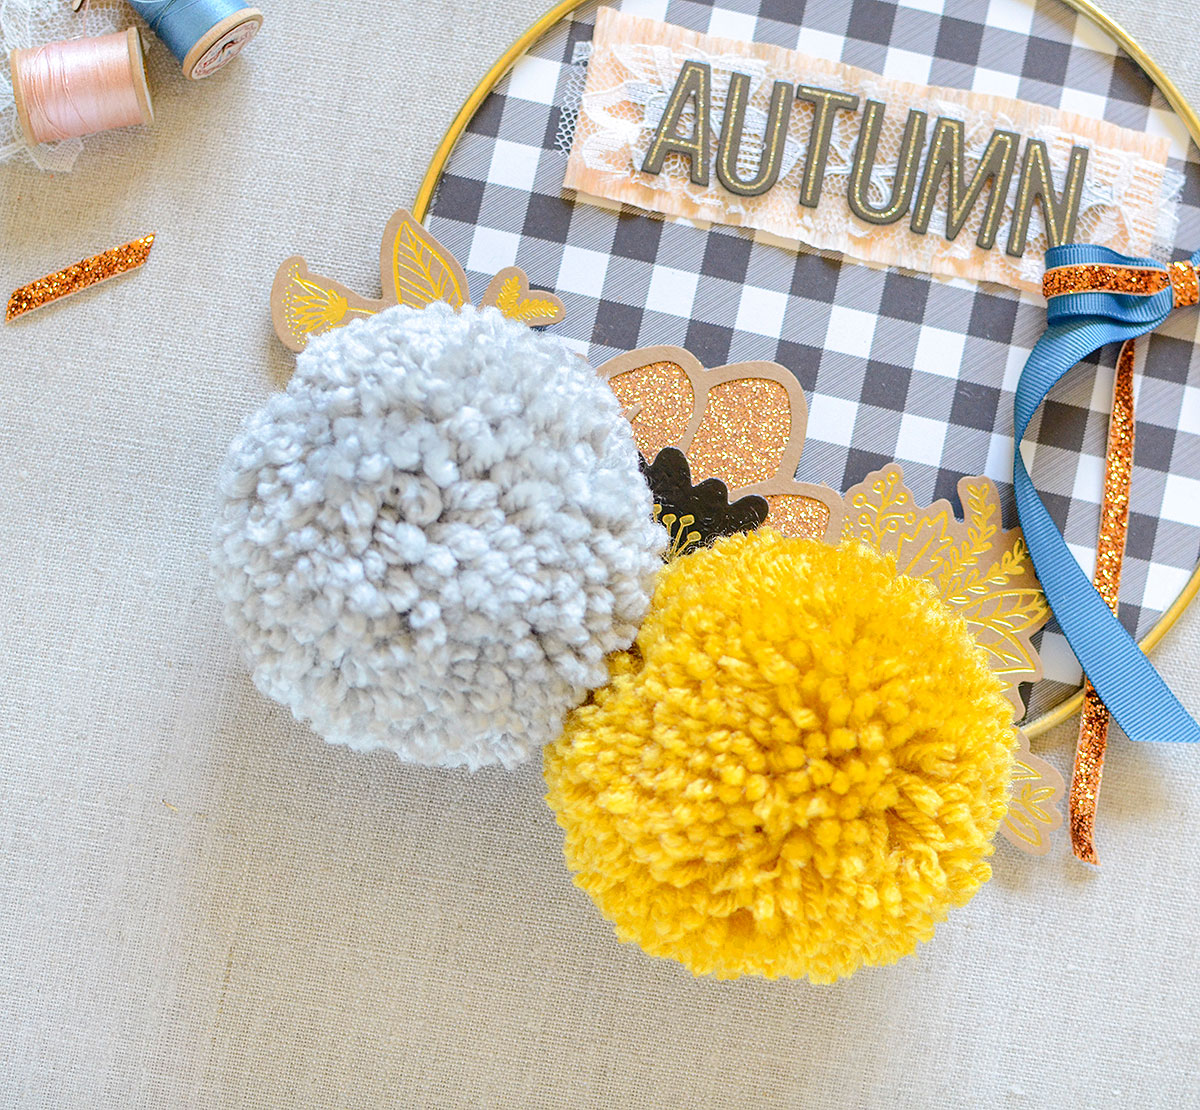 Autumn Hoop by Rebecca Luminaria for We R Memory Keepers featuring the Jumbo Pom Pom maker, Bow Loom, and Circle Spin & Trim